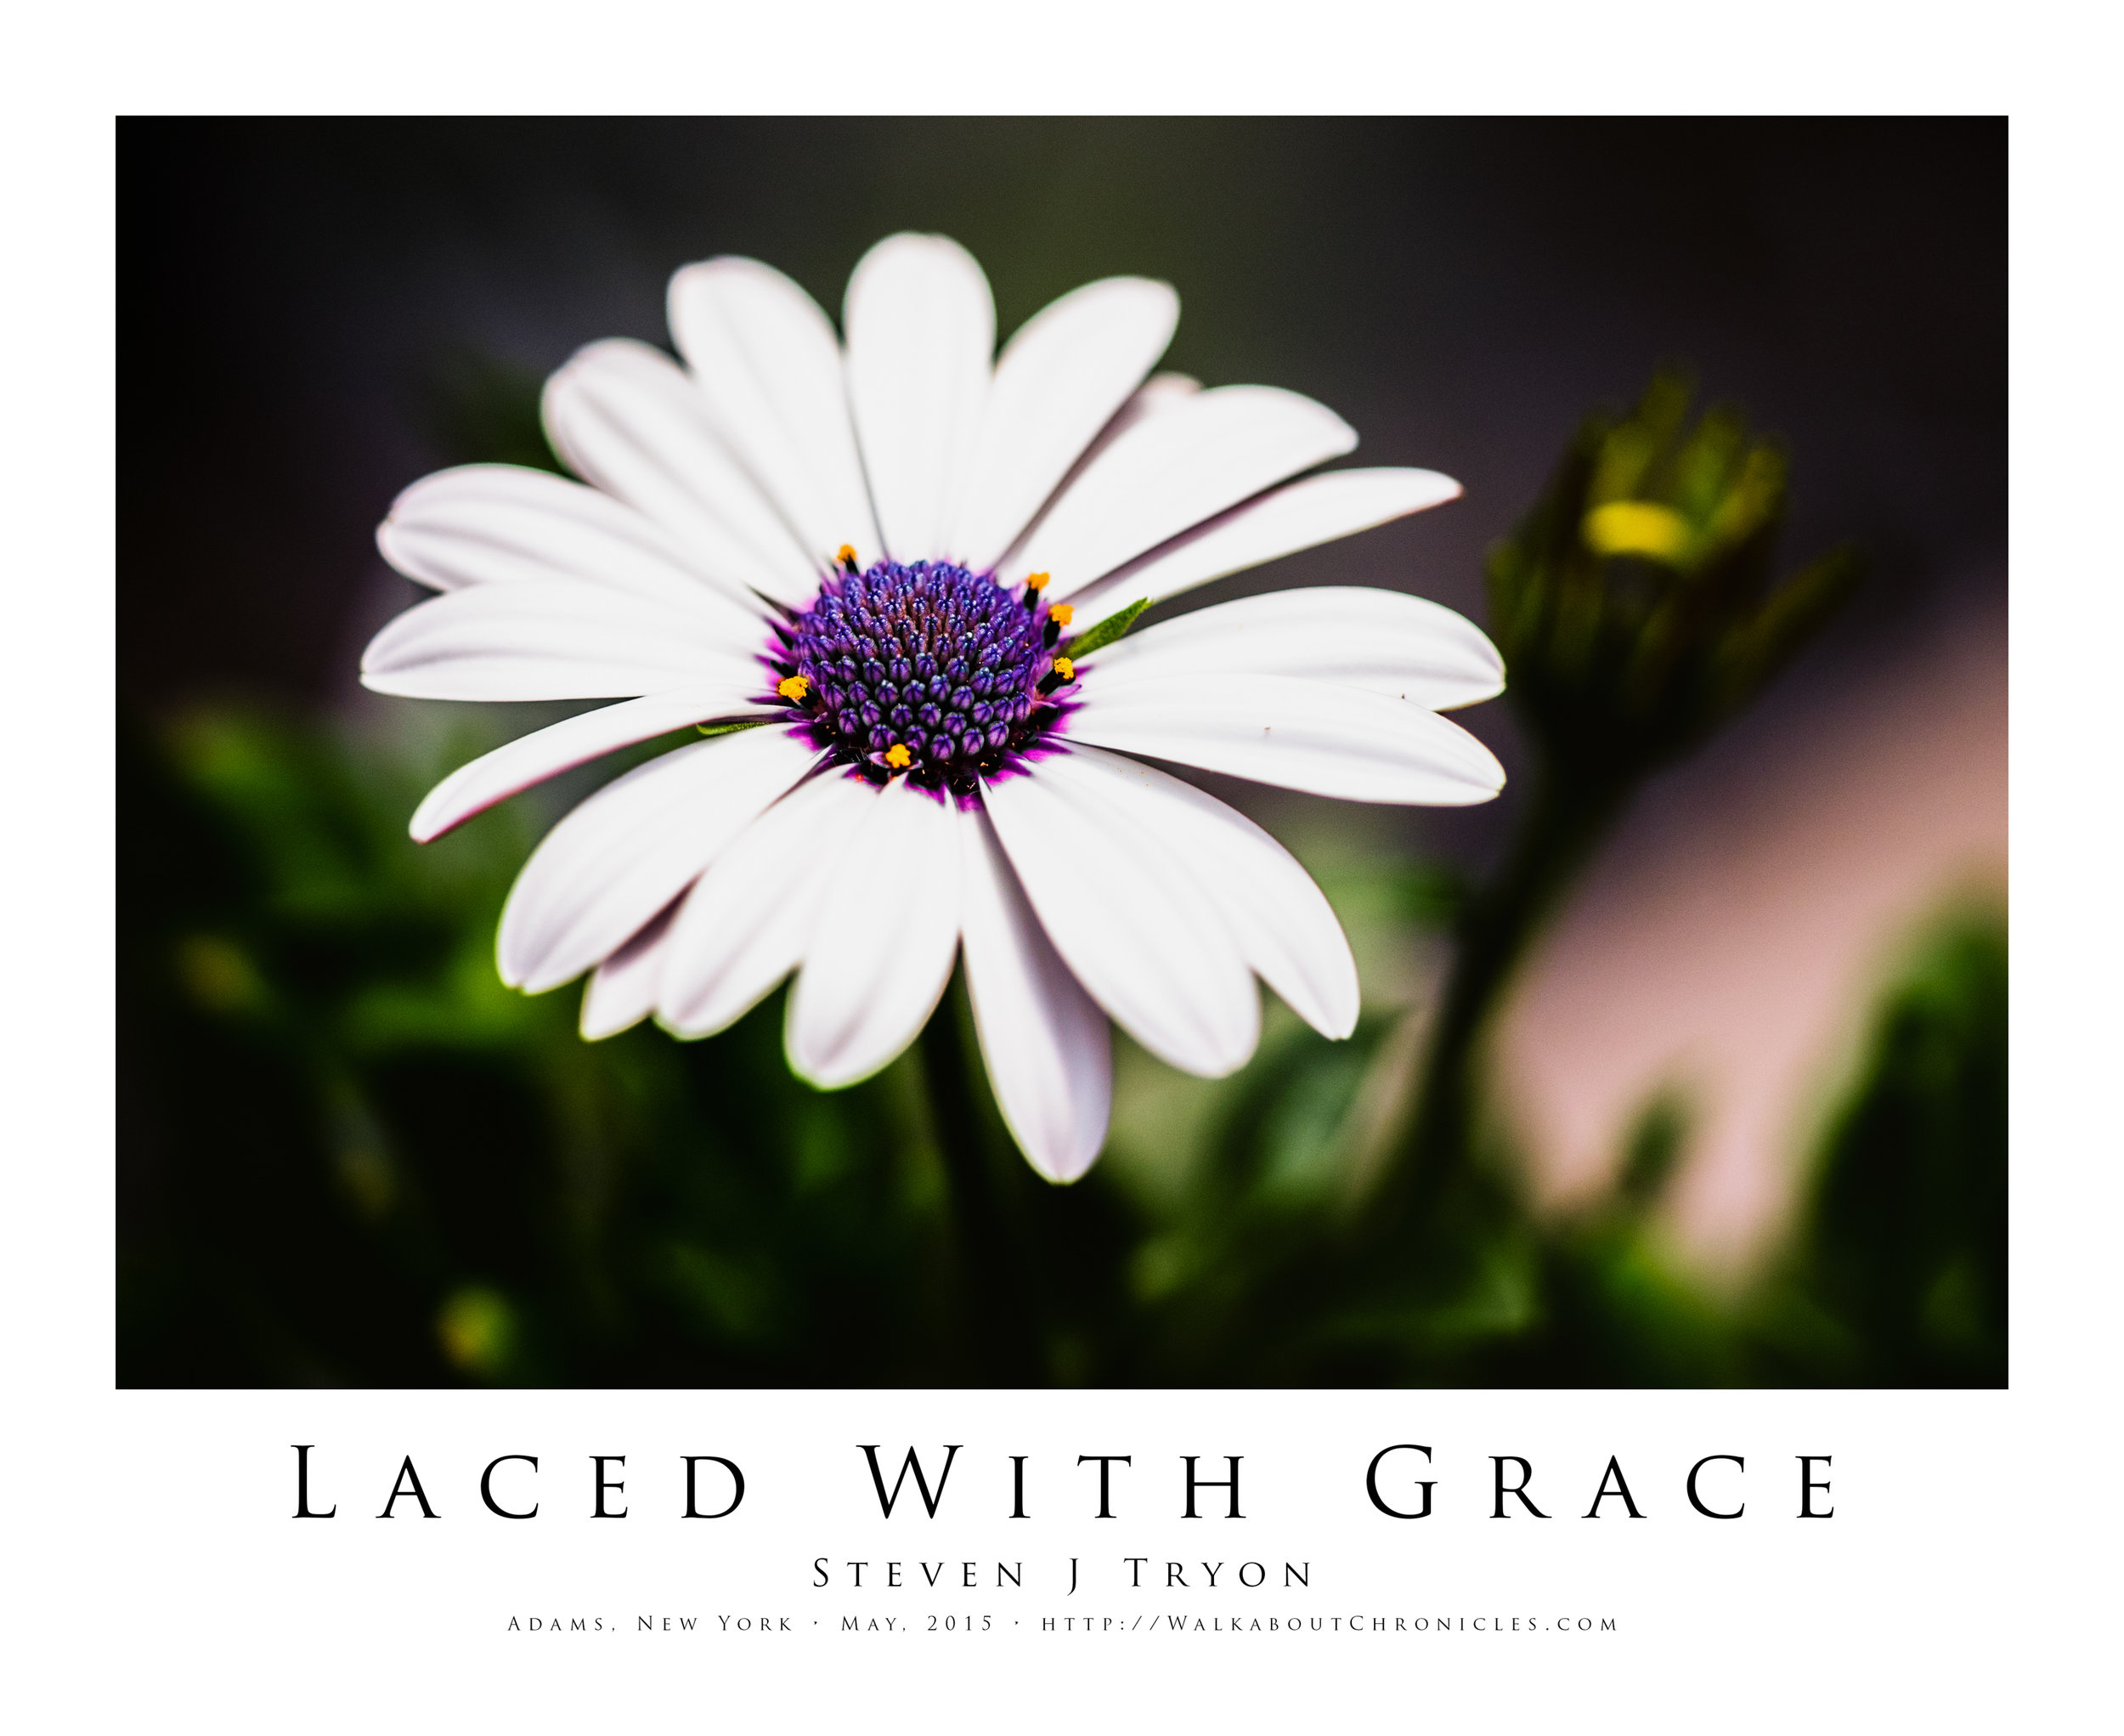 Laced With Grace